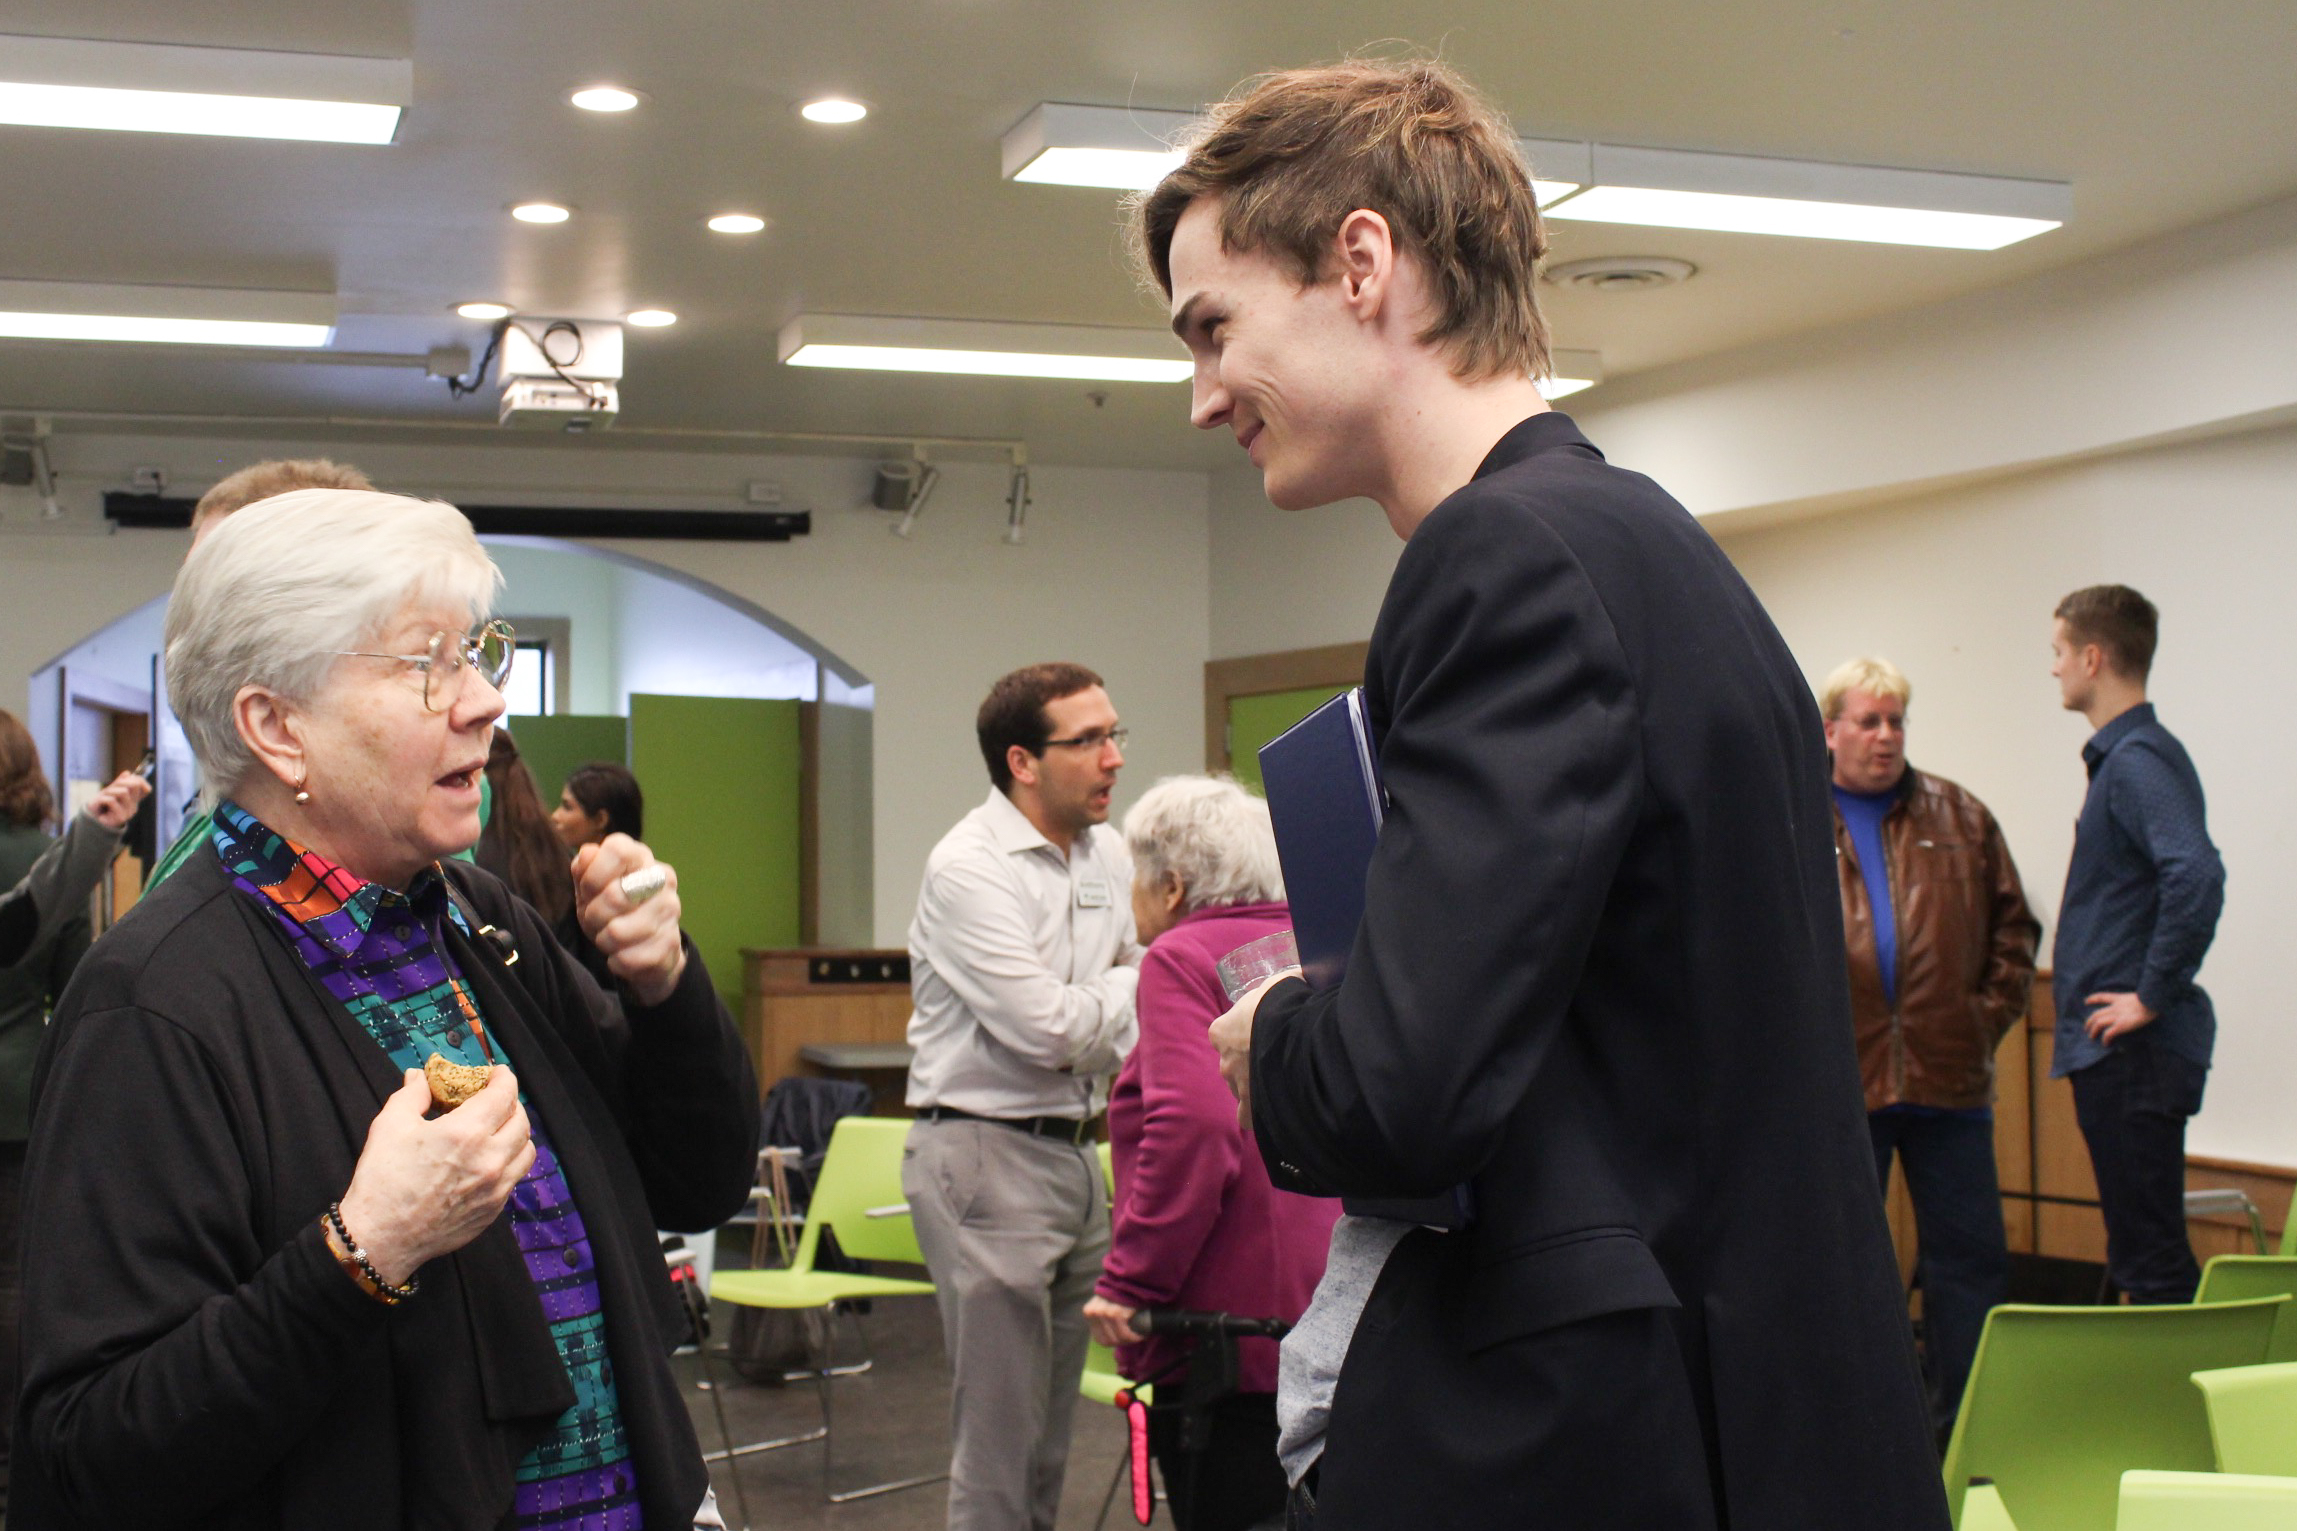 NDP candidate Spencer Chandra Herbert in discussion with a forum attendee.